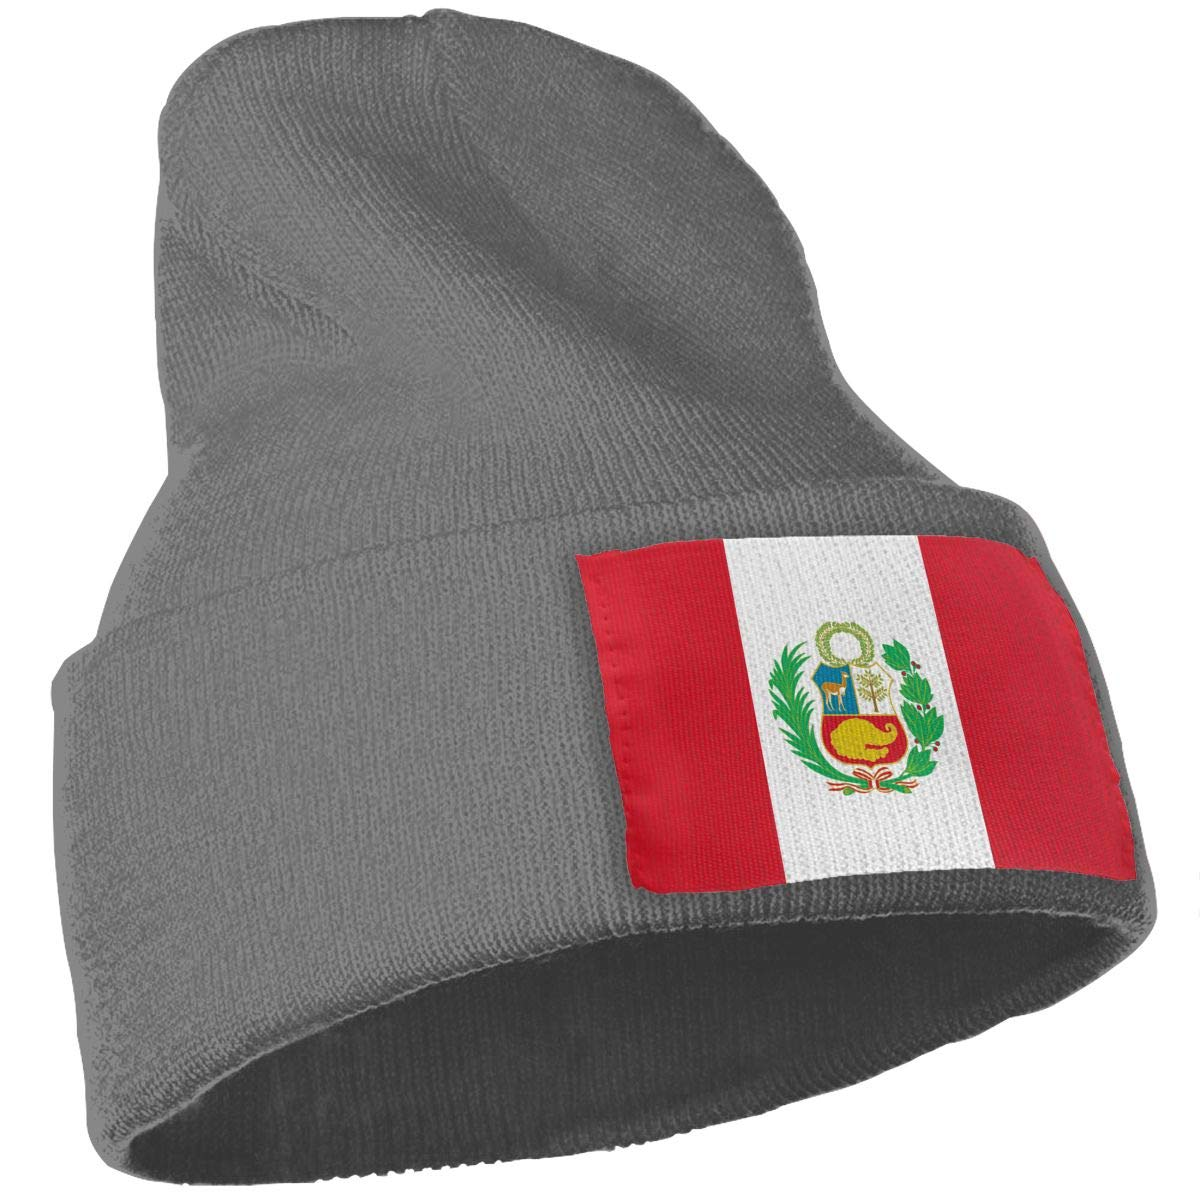 TAOMAP89 Peru Flag Women and Men Skull Caps Winter Warm Stretchy Knit Beanie Hats